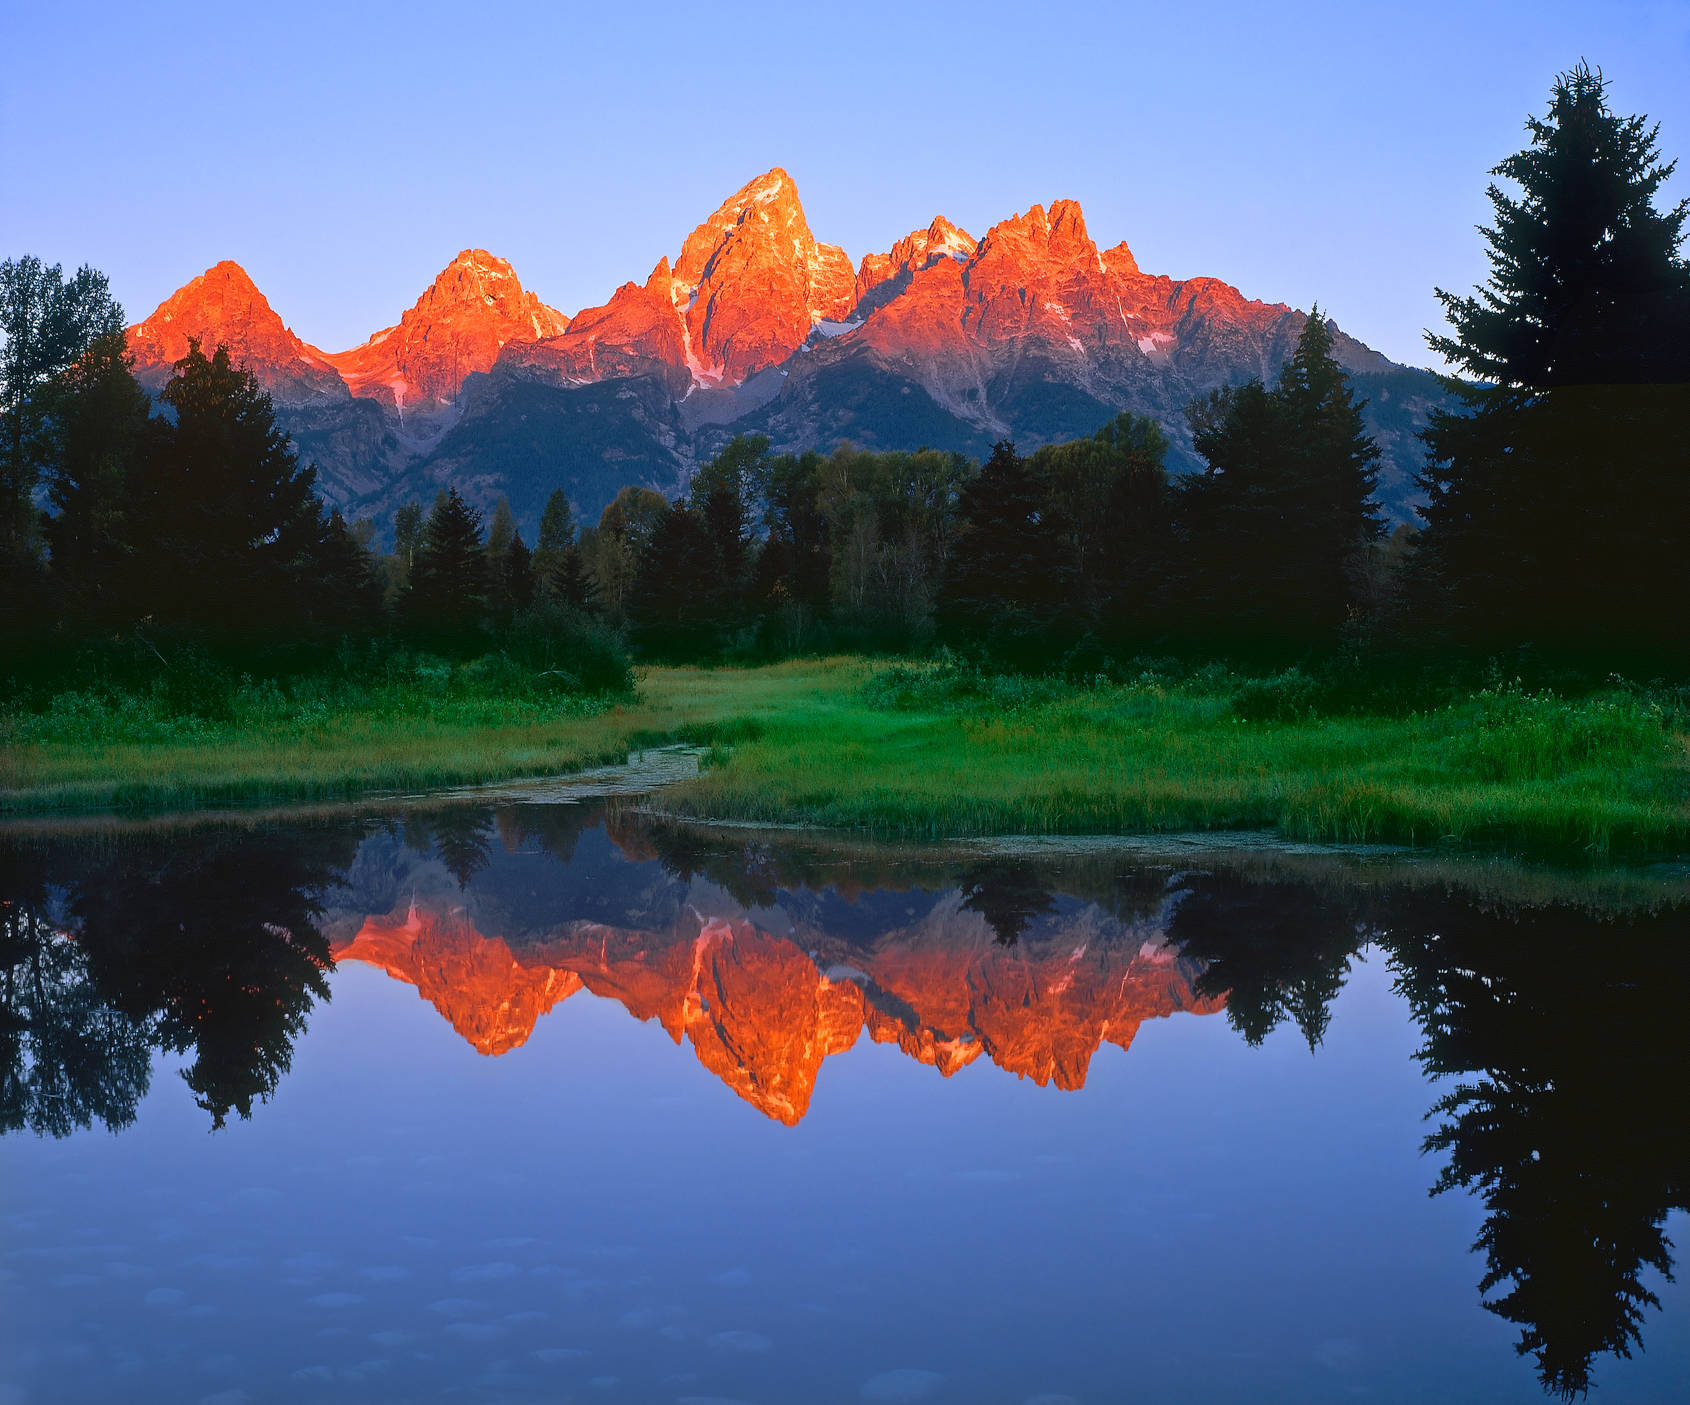 Grand tetons national park clipart - Clipground